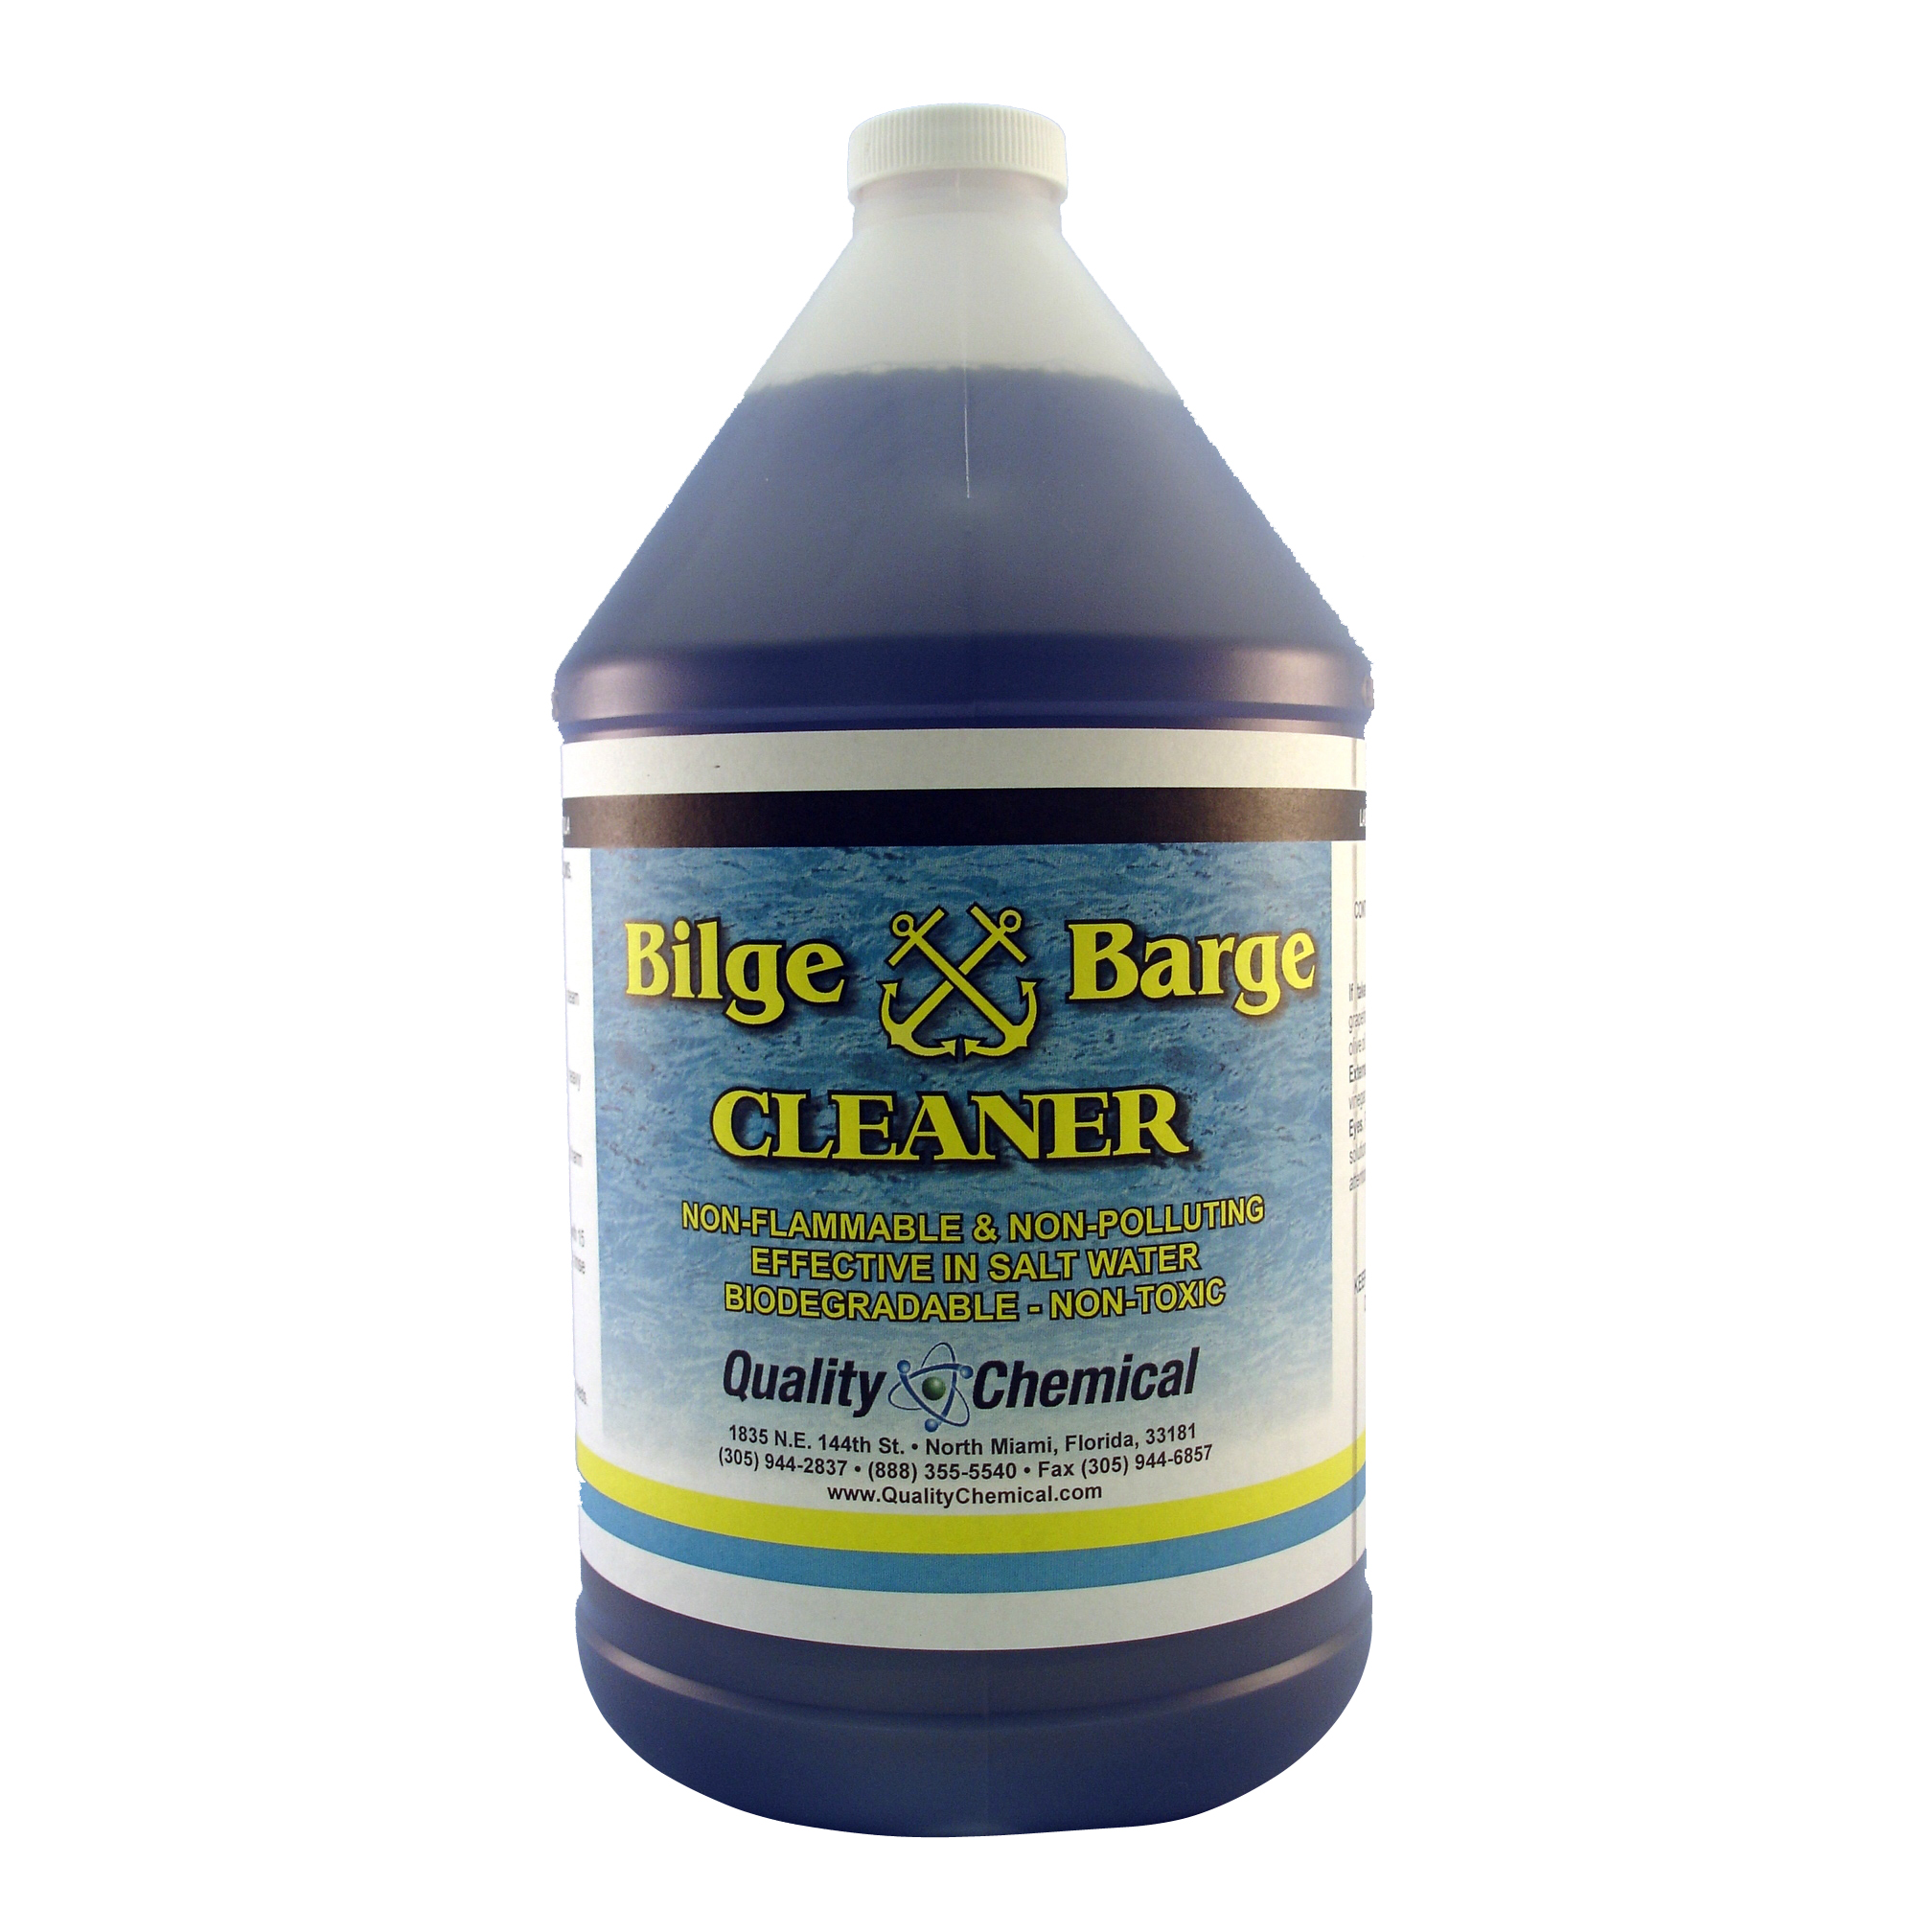 Bilge & Barge Cleaner